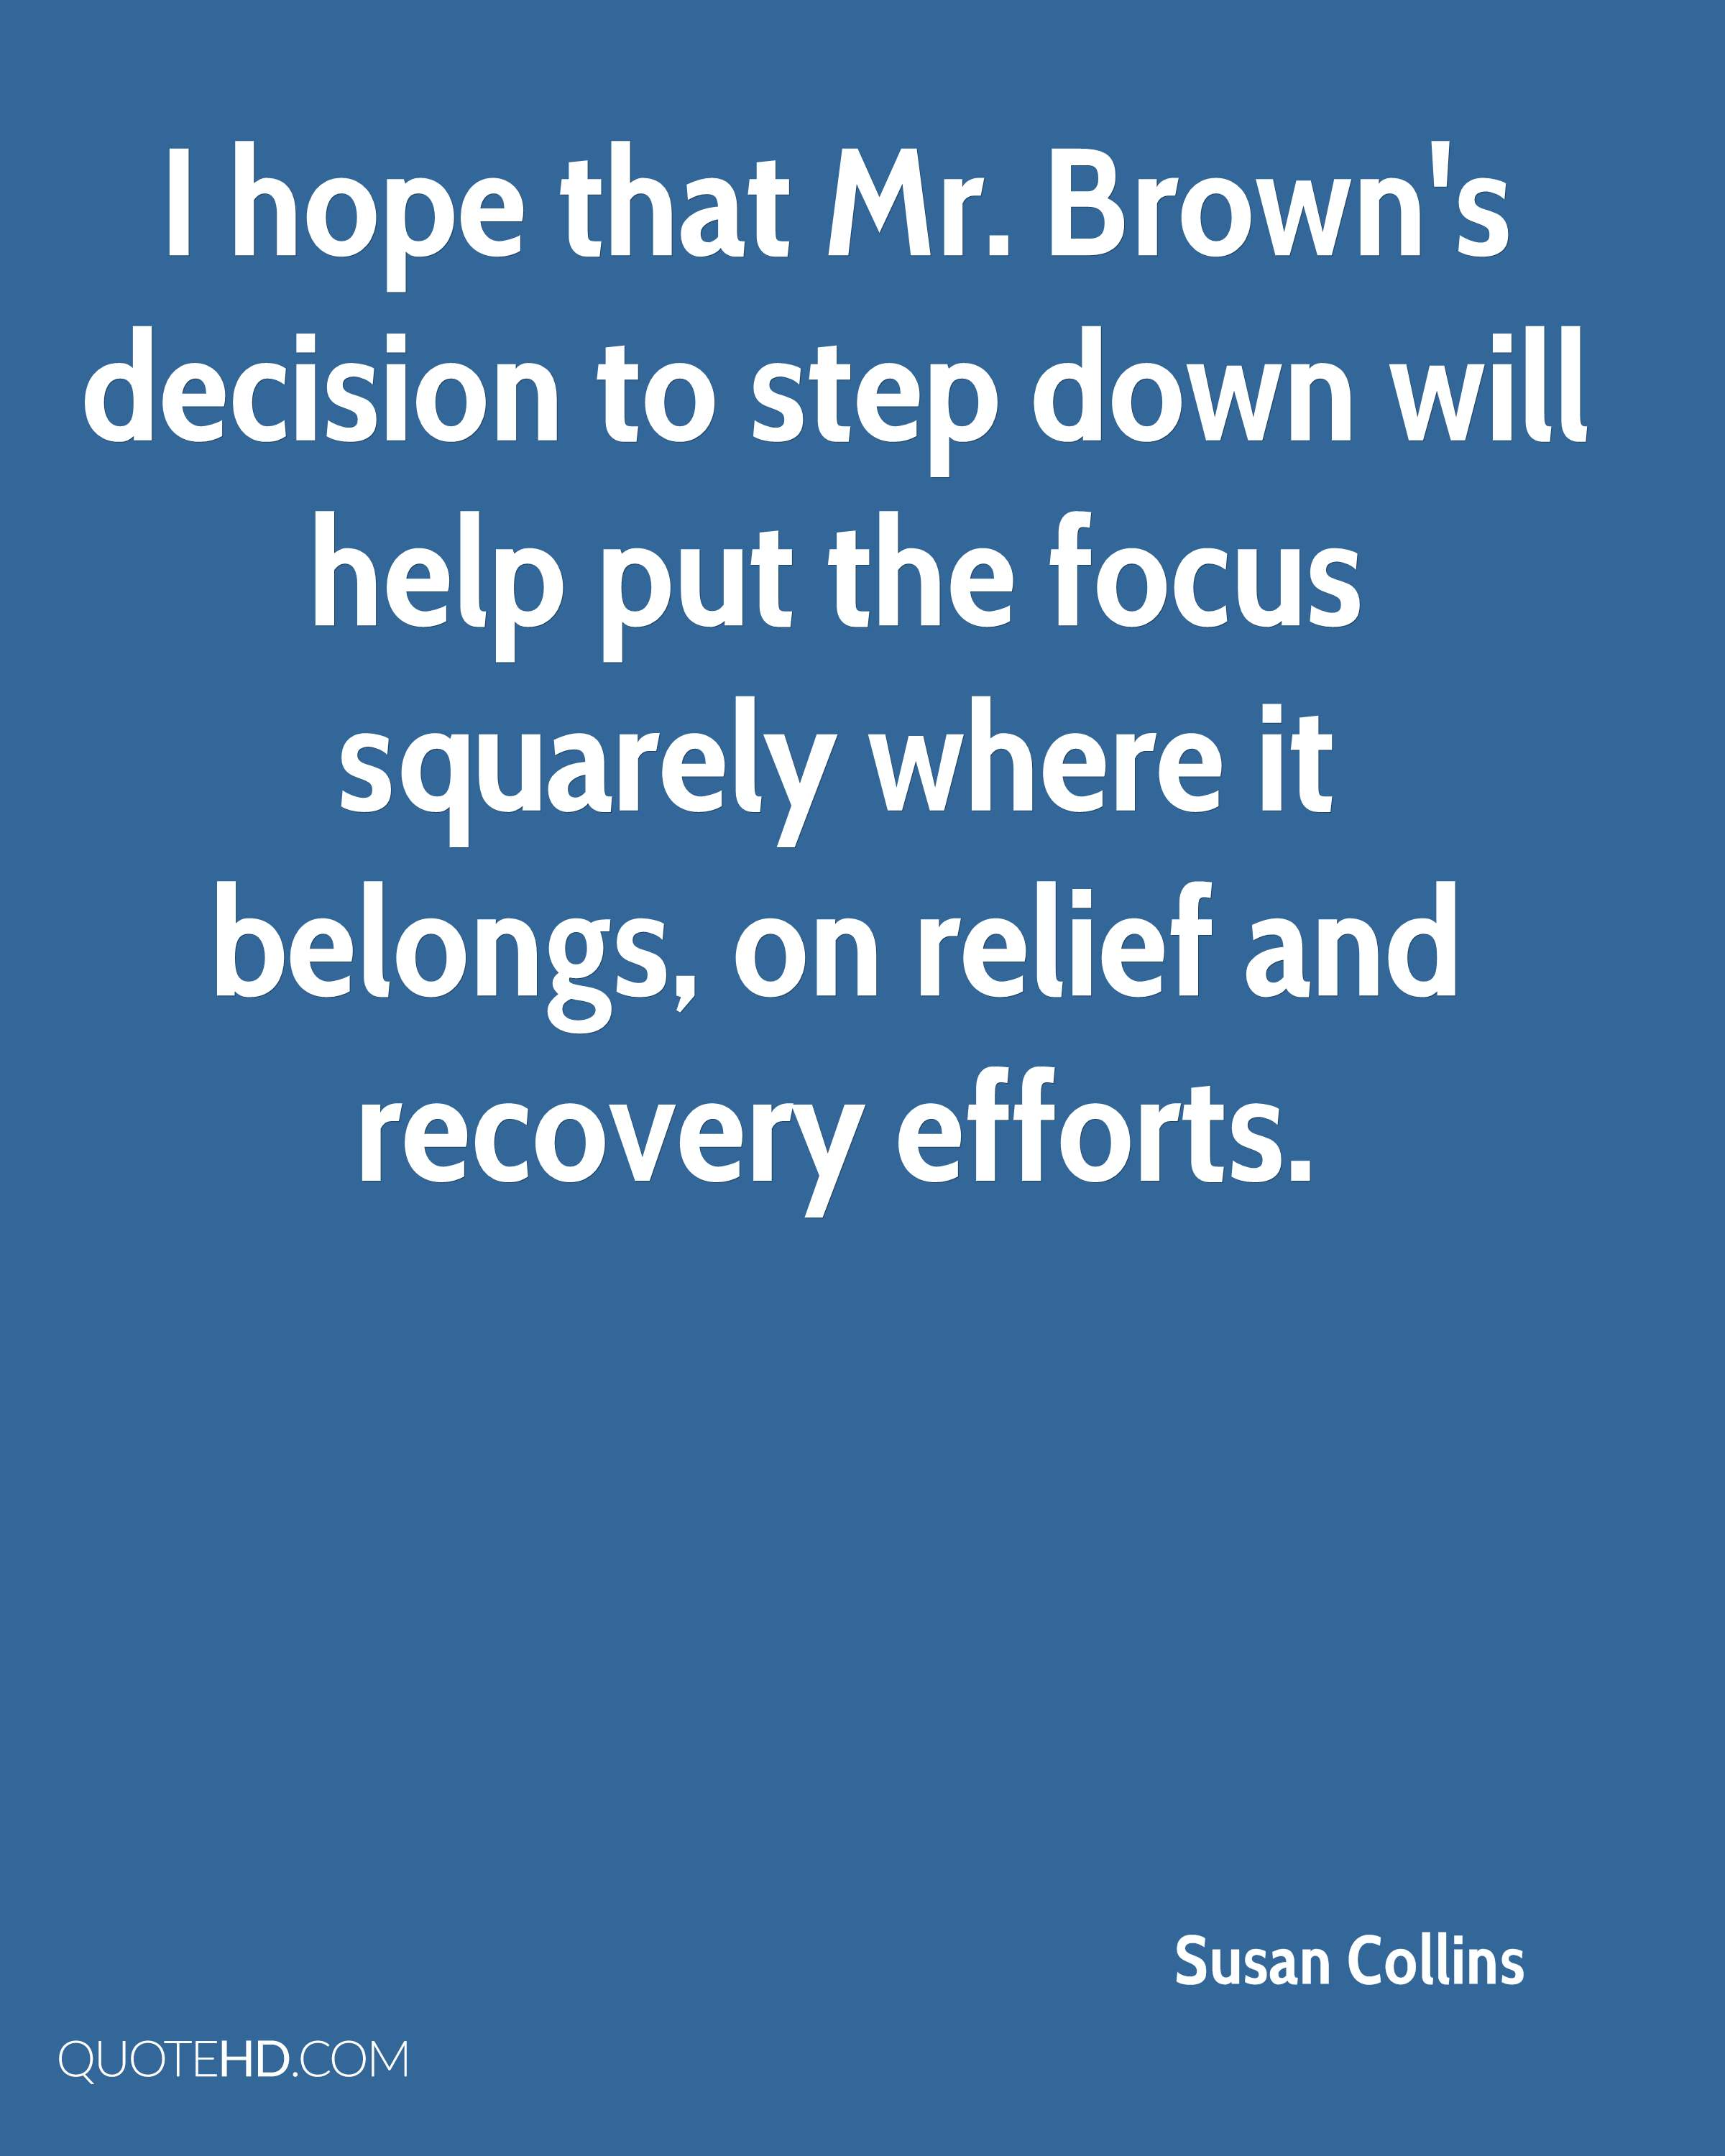 I hope that Mr. Brown's decision to step down will help put the focus squarely where it belongs, on relief and recovery efforts.